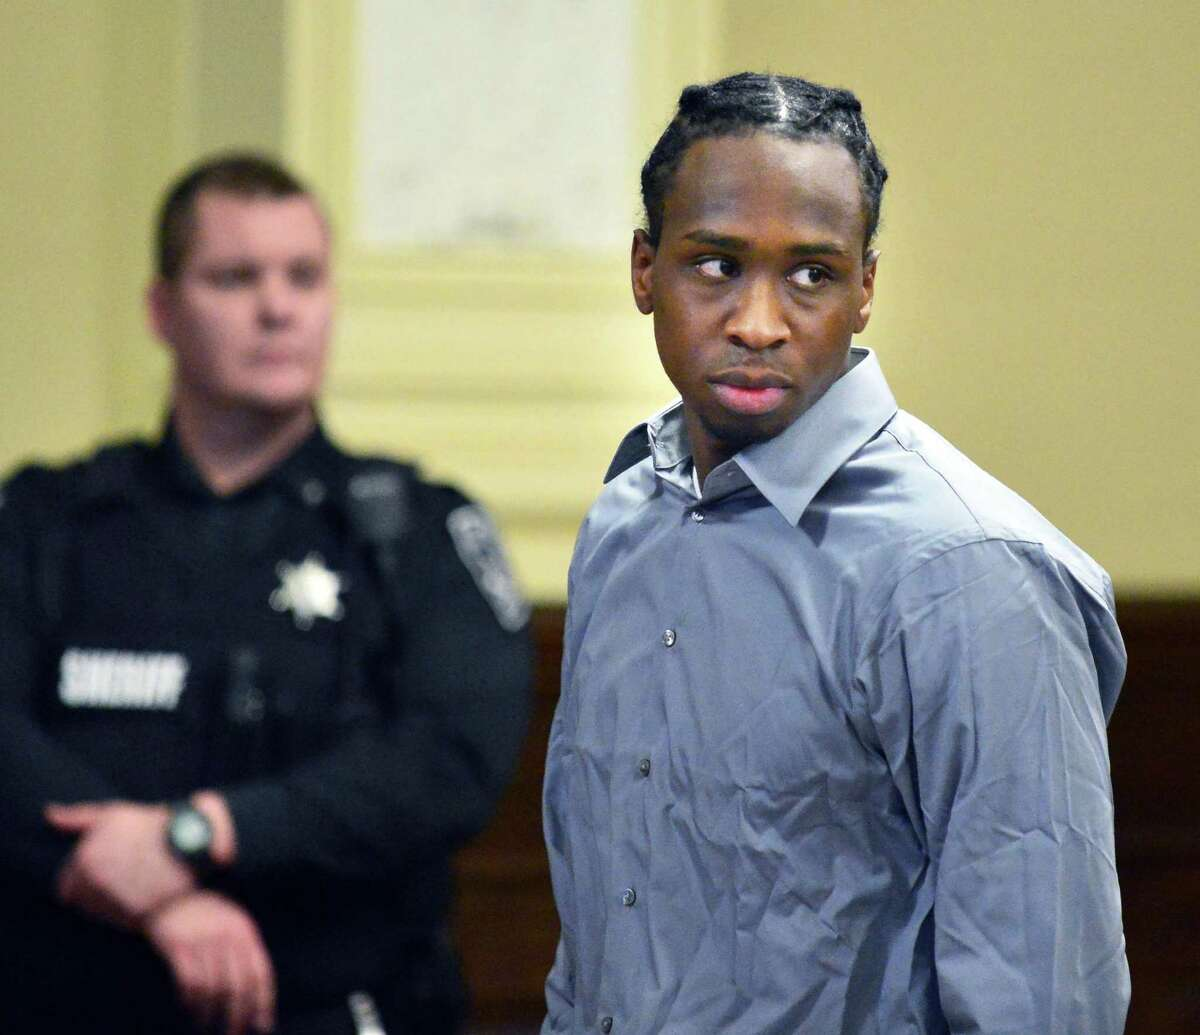 Quintril Clark, 23, of Troy, appears in court to face charges in the killing of Sha-Kim Miller Tuesday Dec. 3, 2013, at the Rensselaer County Courthouse in Troy, NY. (John Carl D'Annibale / Times Union)